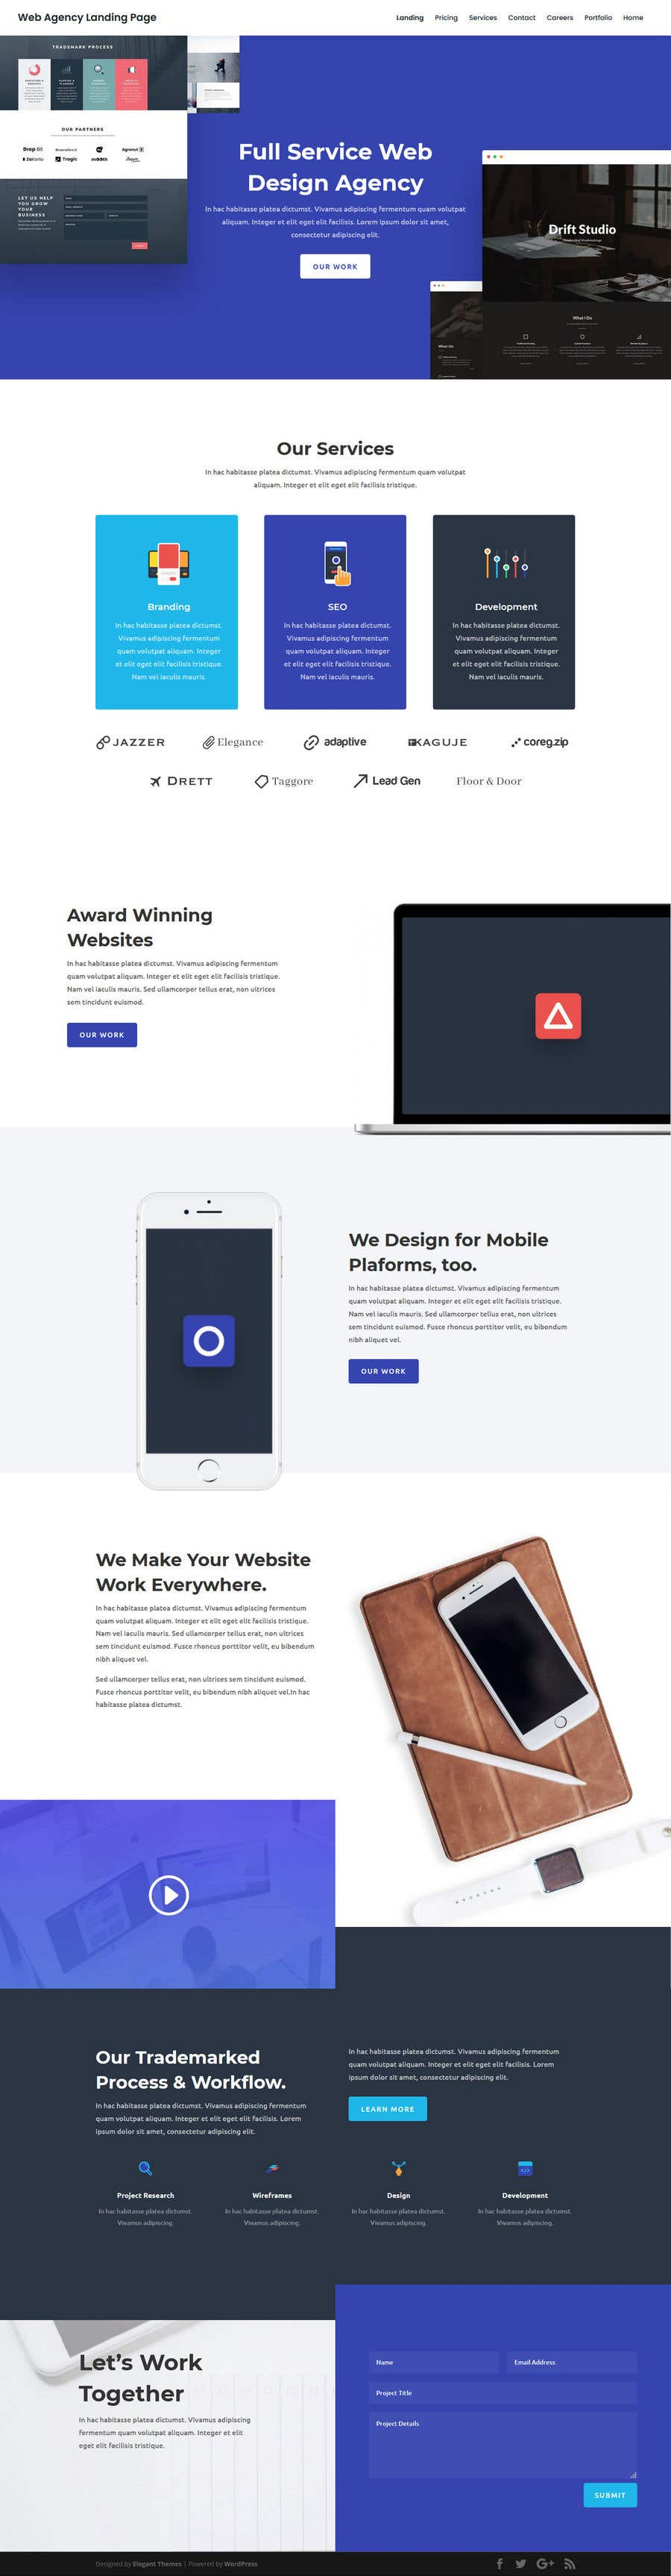 Bài tham dự cuộc thi #                                        39                                      cho                                         I need a Landing Page Website for Small Business Stores